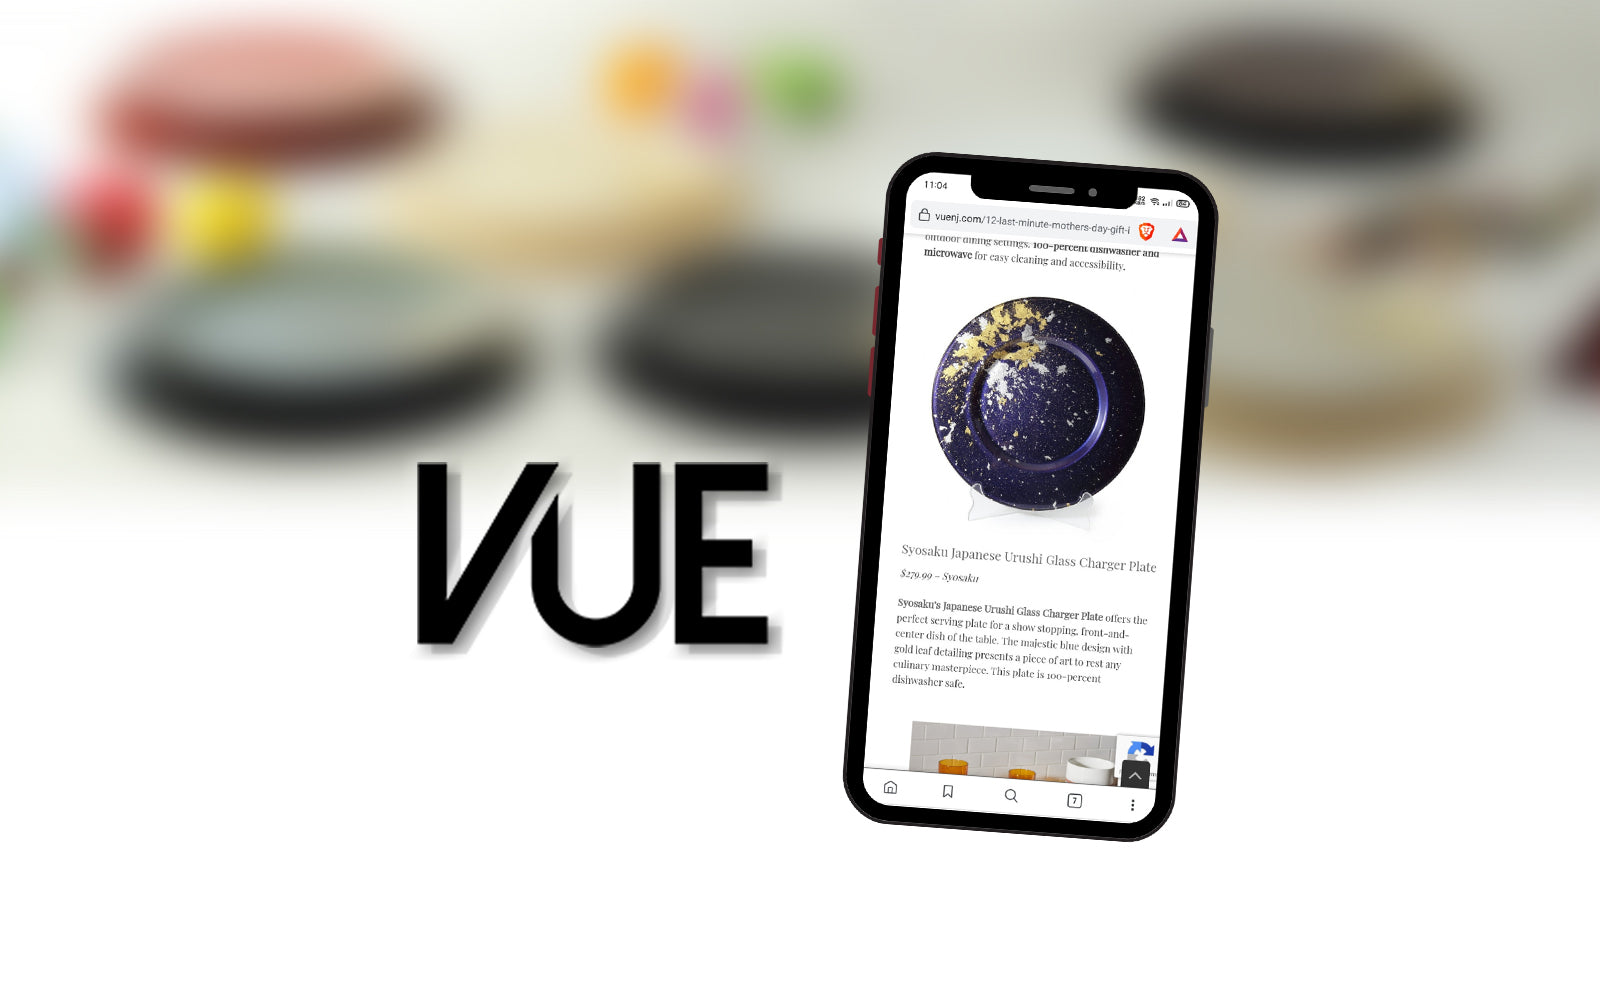 Featured in VUE